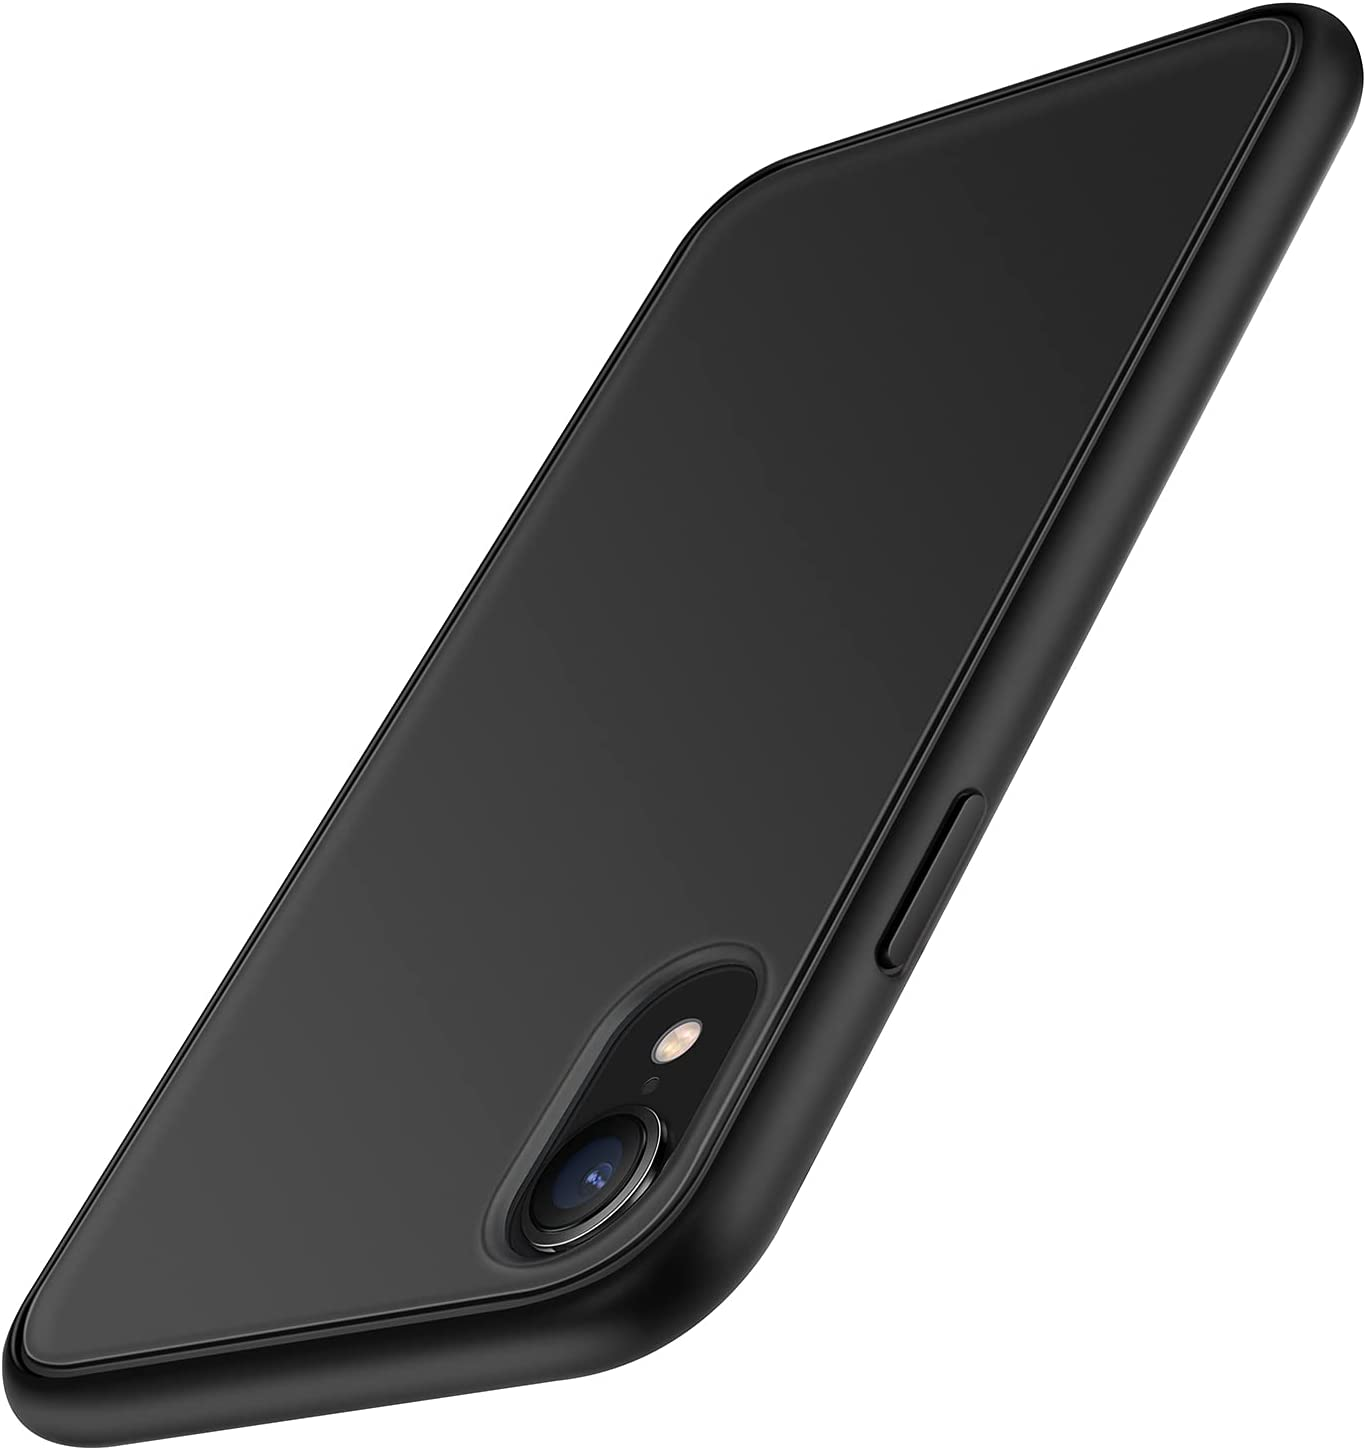 TENDLIN Compatible with iPhone XR Case Translucent Matte Hard Back with Soft Silicone Bumper Comfortable Case (Black)